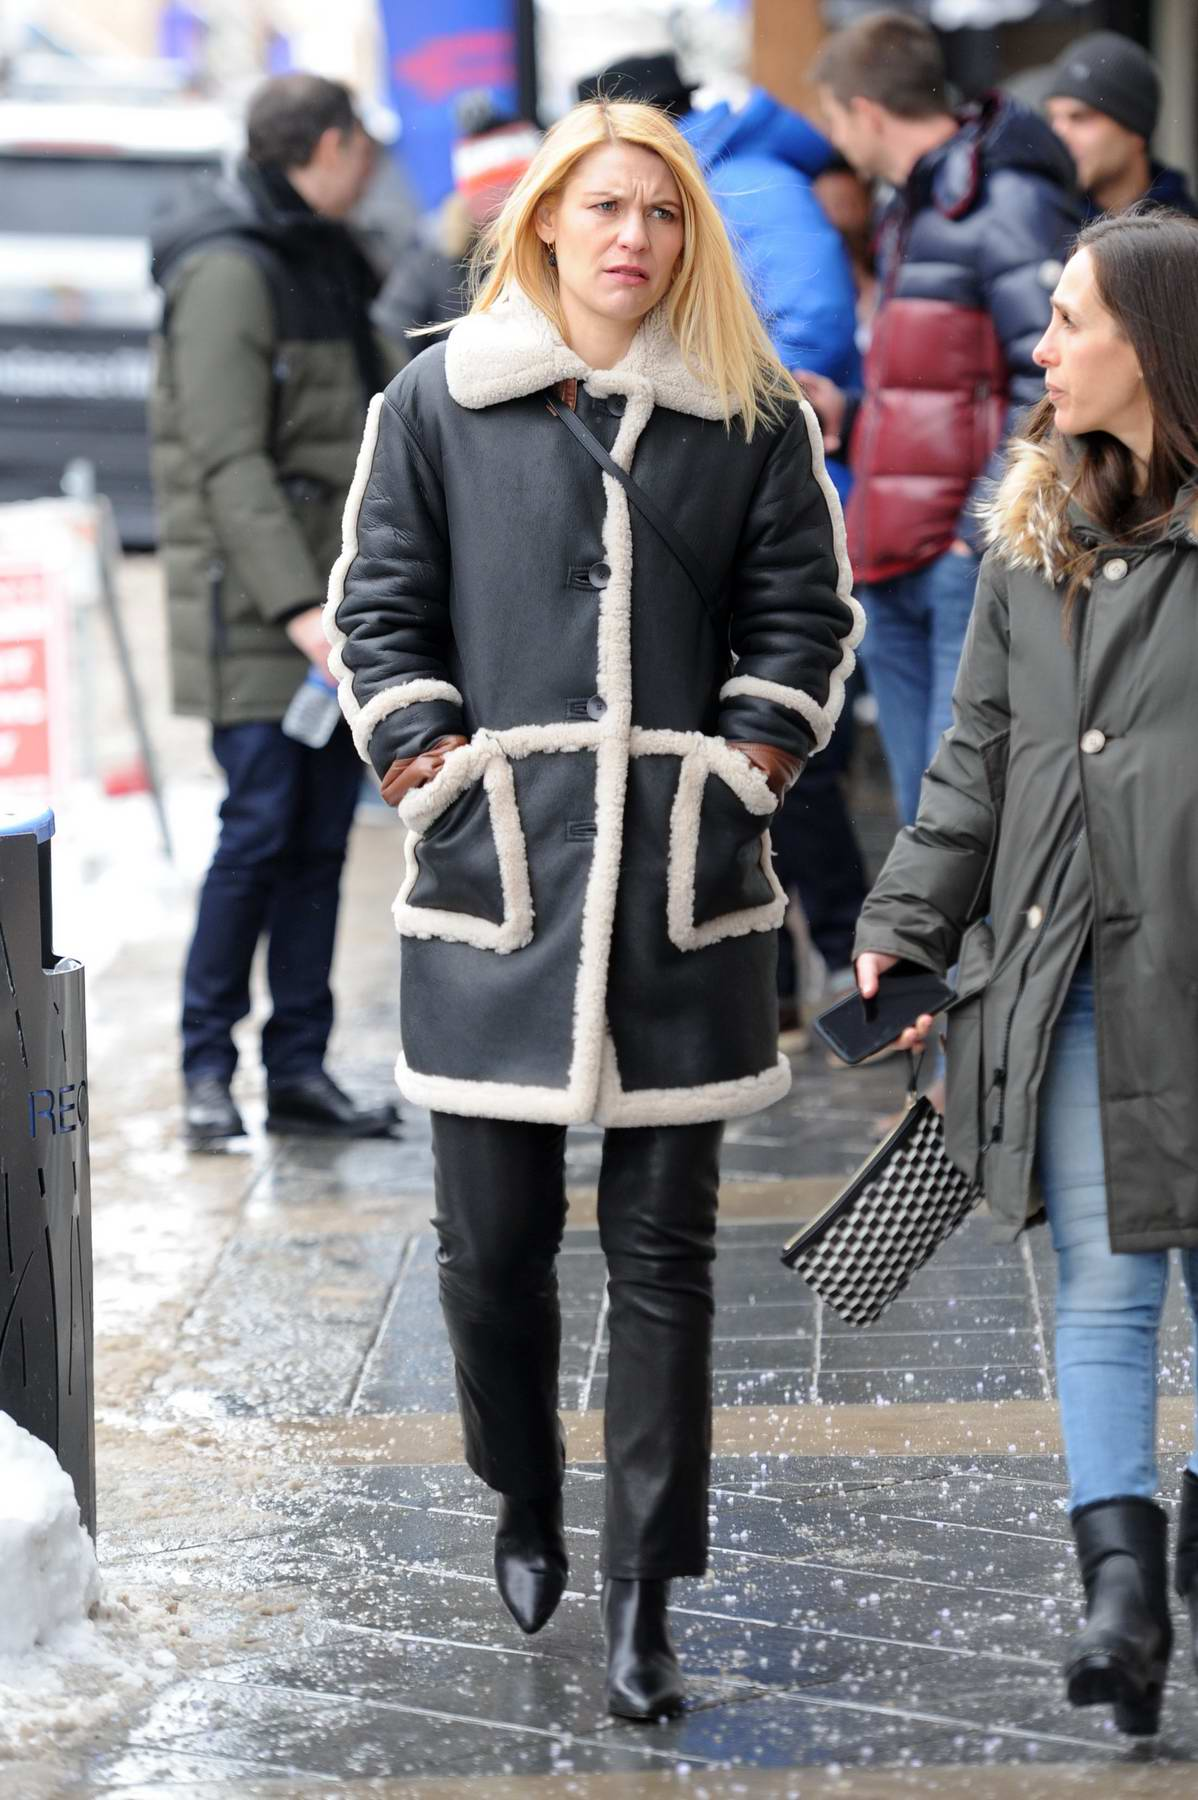 Claire Danes dressed in a fur lined jacket with leather pants while out and about at the Sundance Film Festival in Park City, Utah